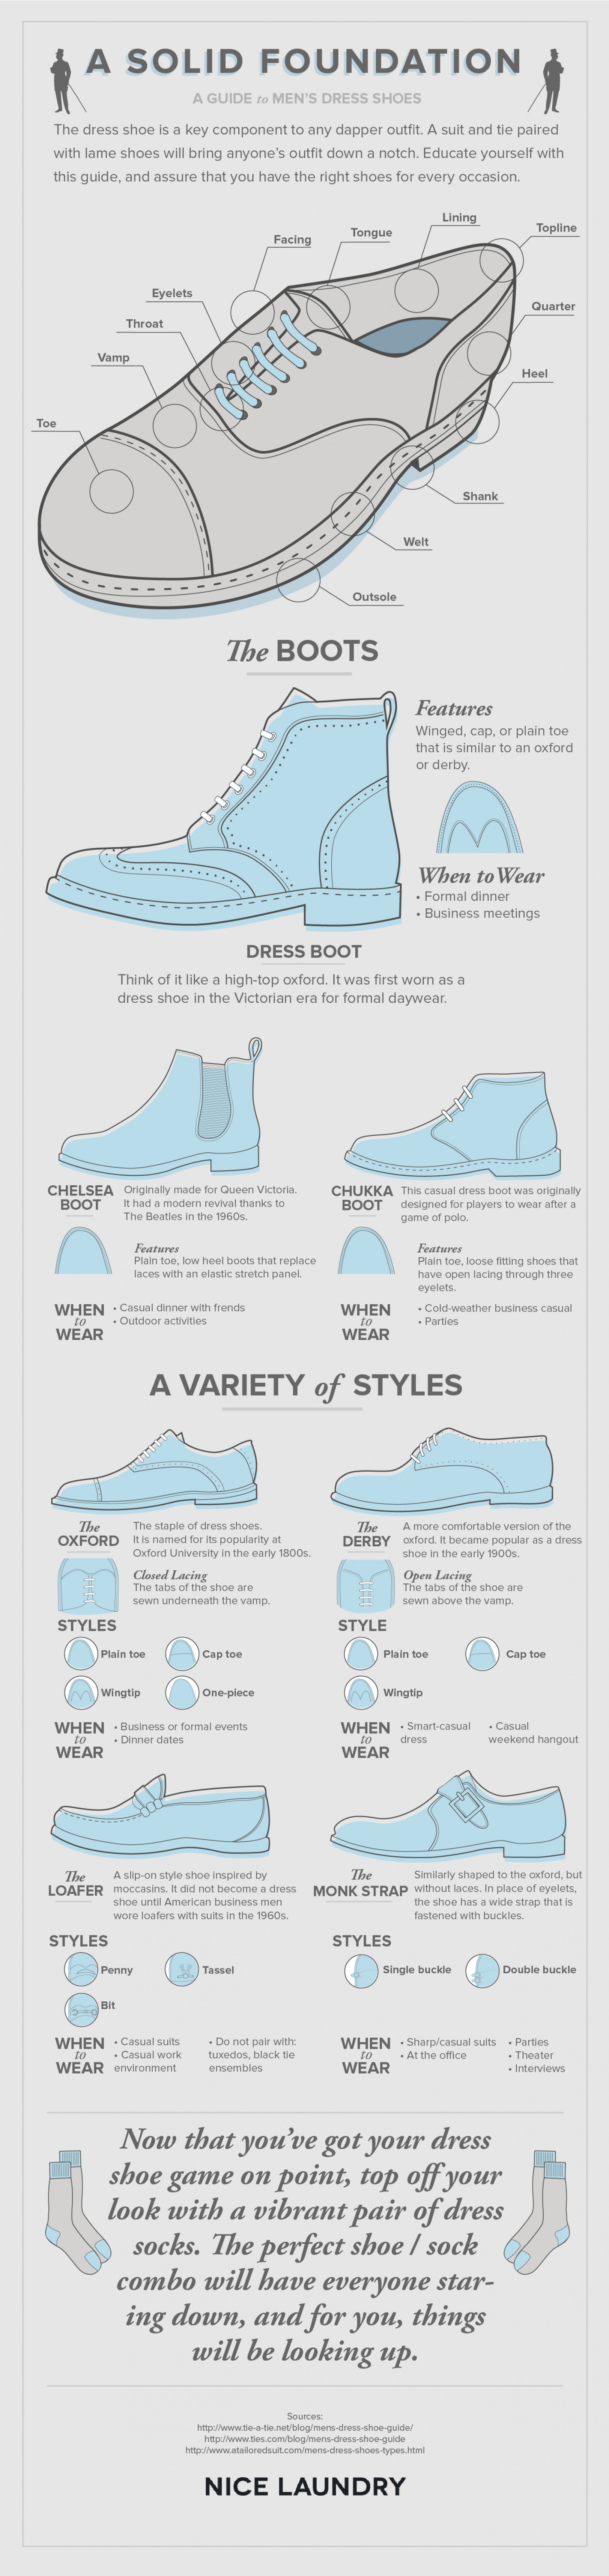 A Visual Guide to Men's Dress Shoes Infographic